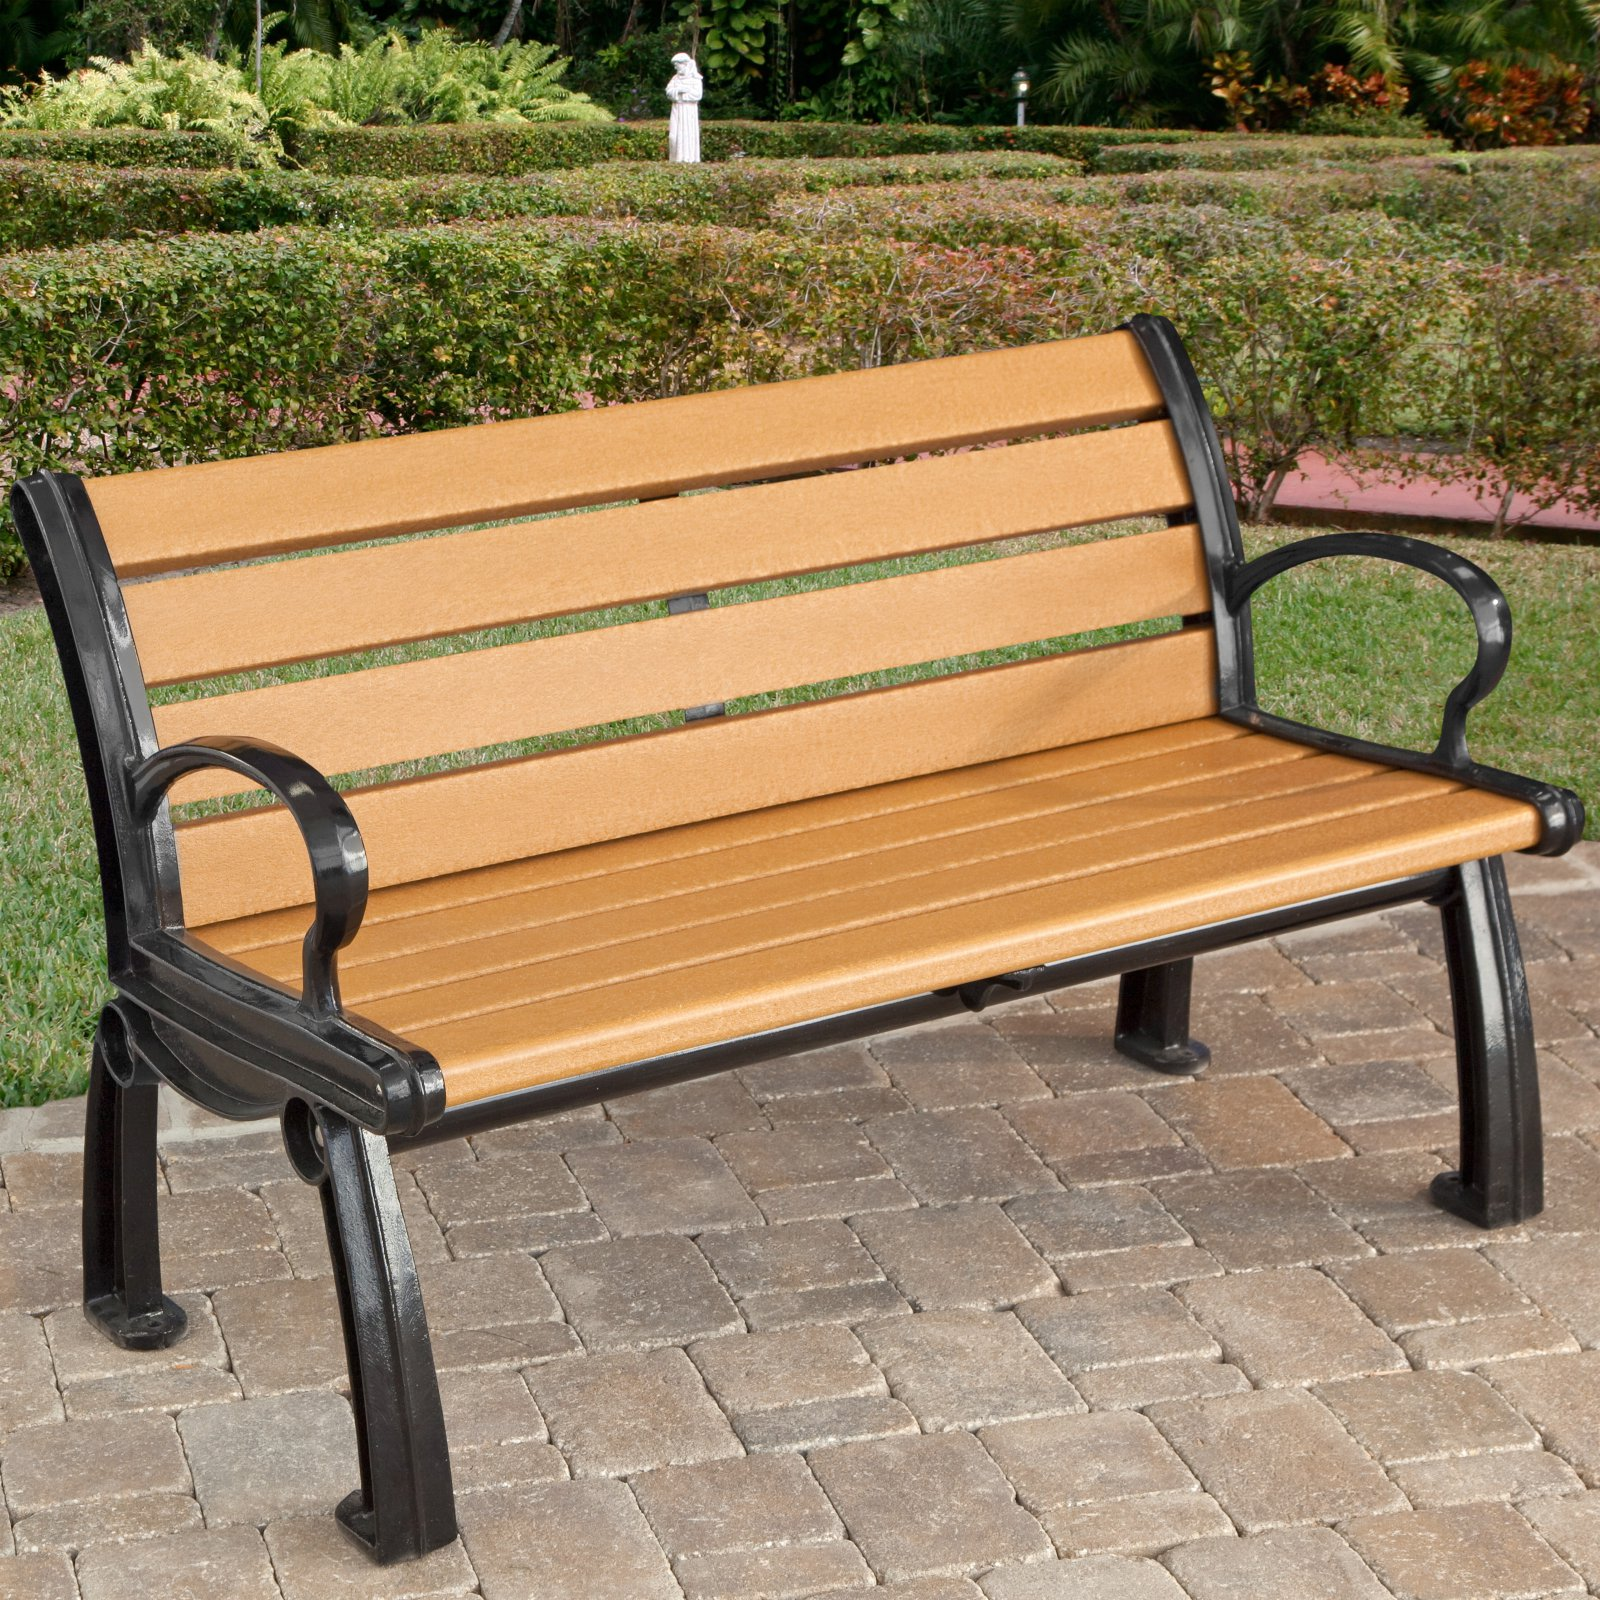 Jayhawk Plastics Heritage Recycled Plastic Park Bench by